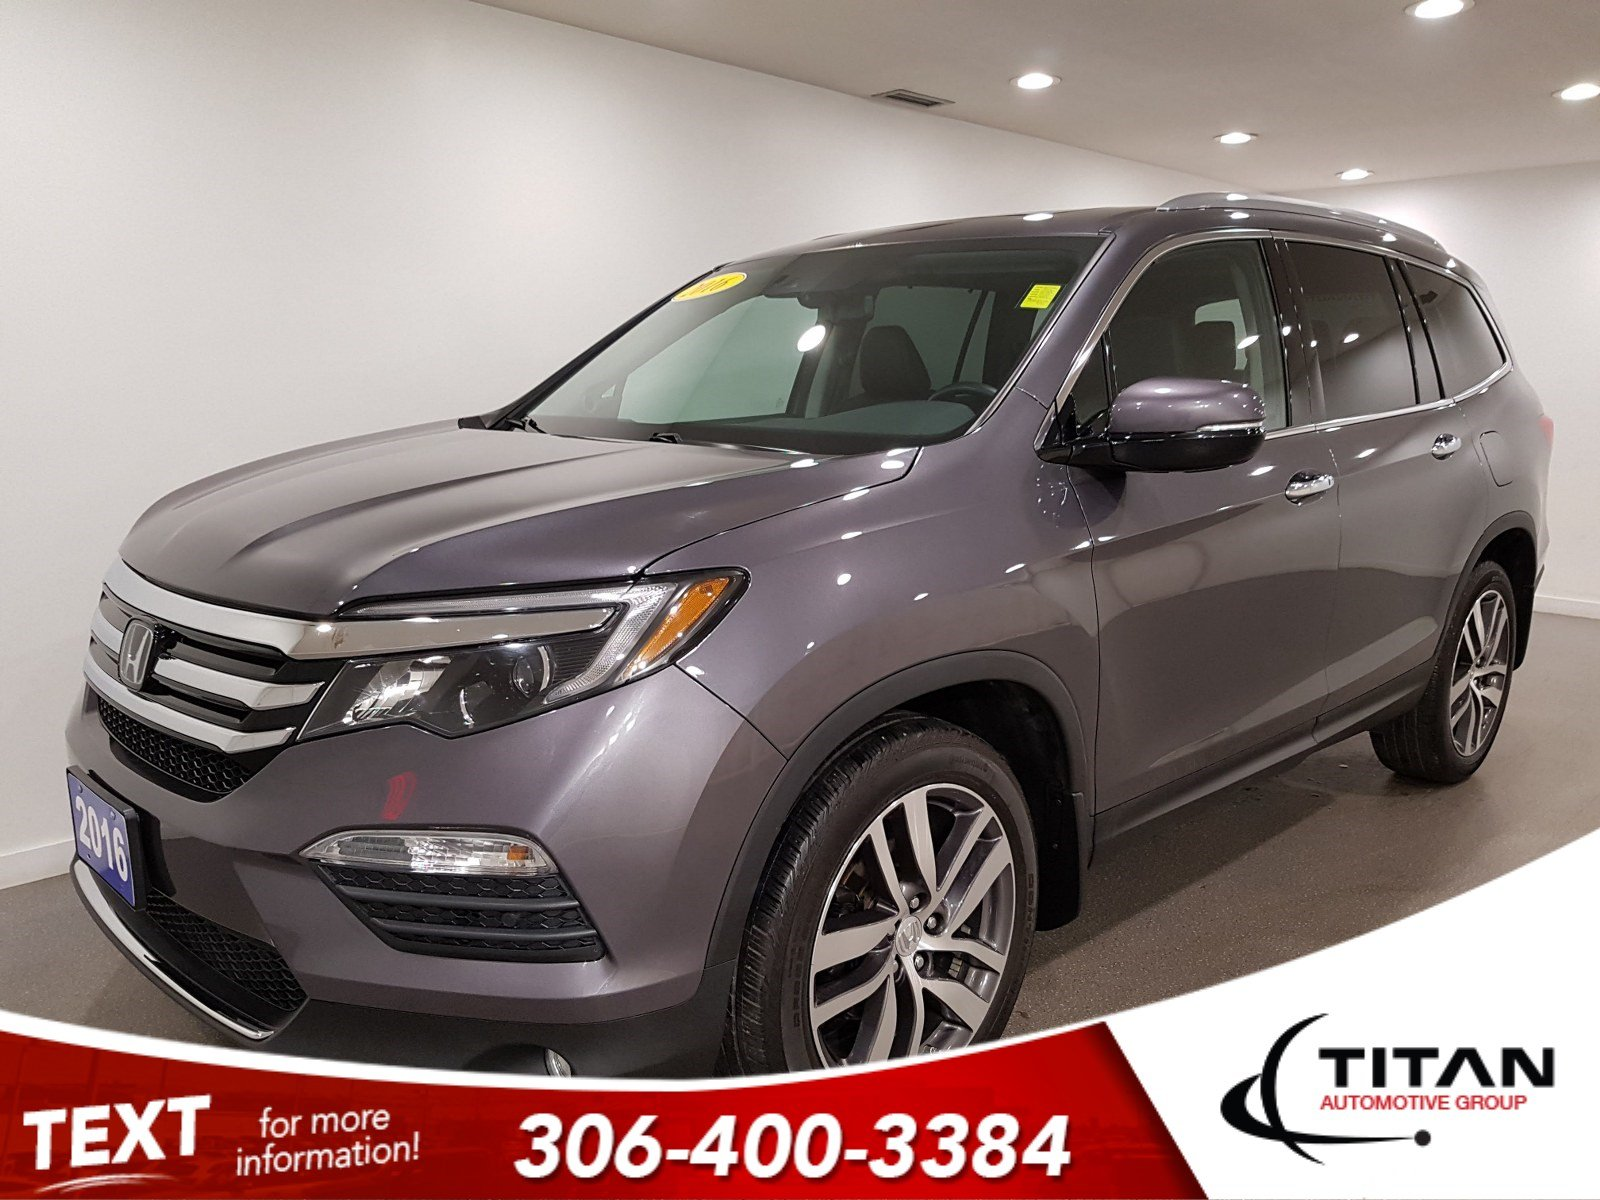 Pre-Owned 2016 Honda Pilot Touring|AWD|CAM|NAV|Rims|Htd Seats|V6